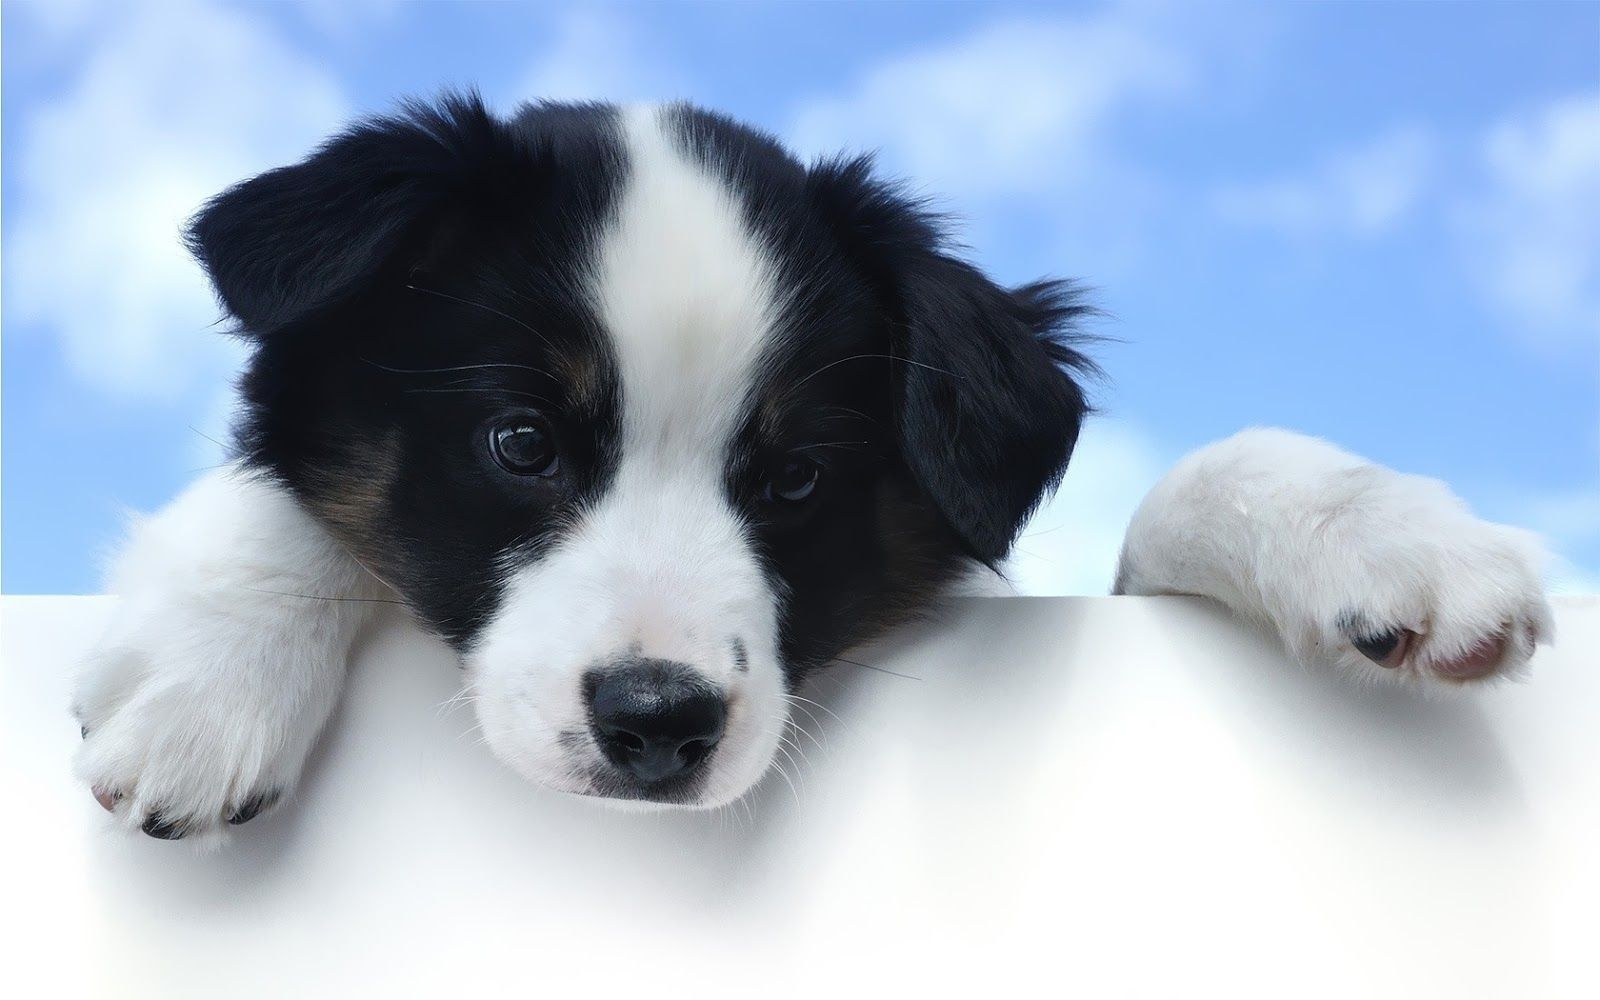 Puppy wallpaper dogs animals wallpapers for free download about